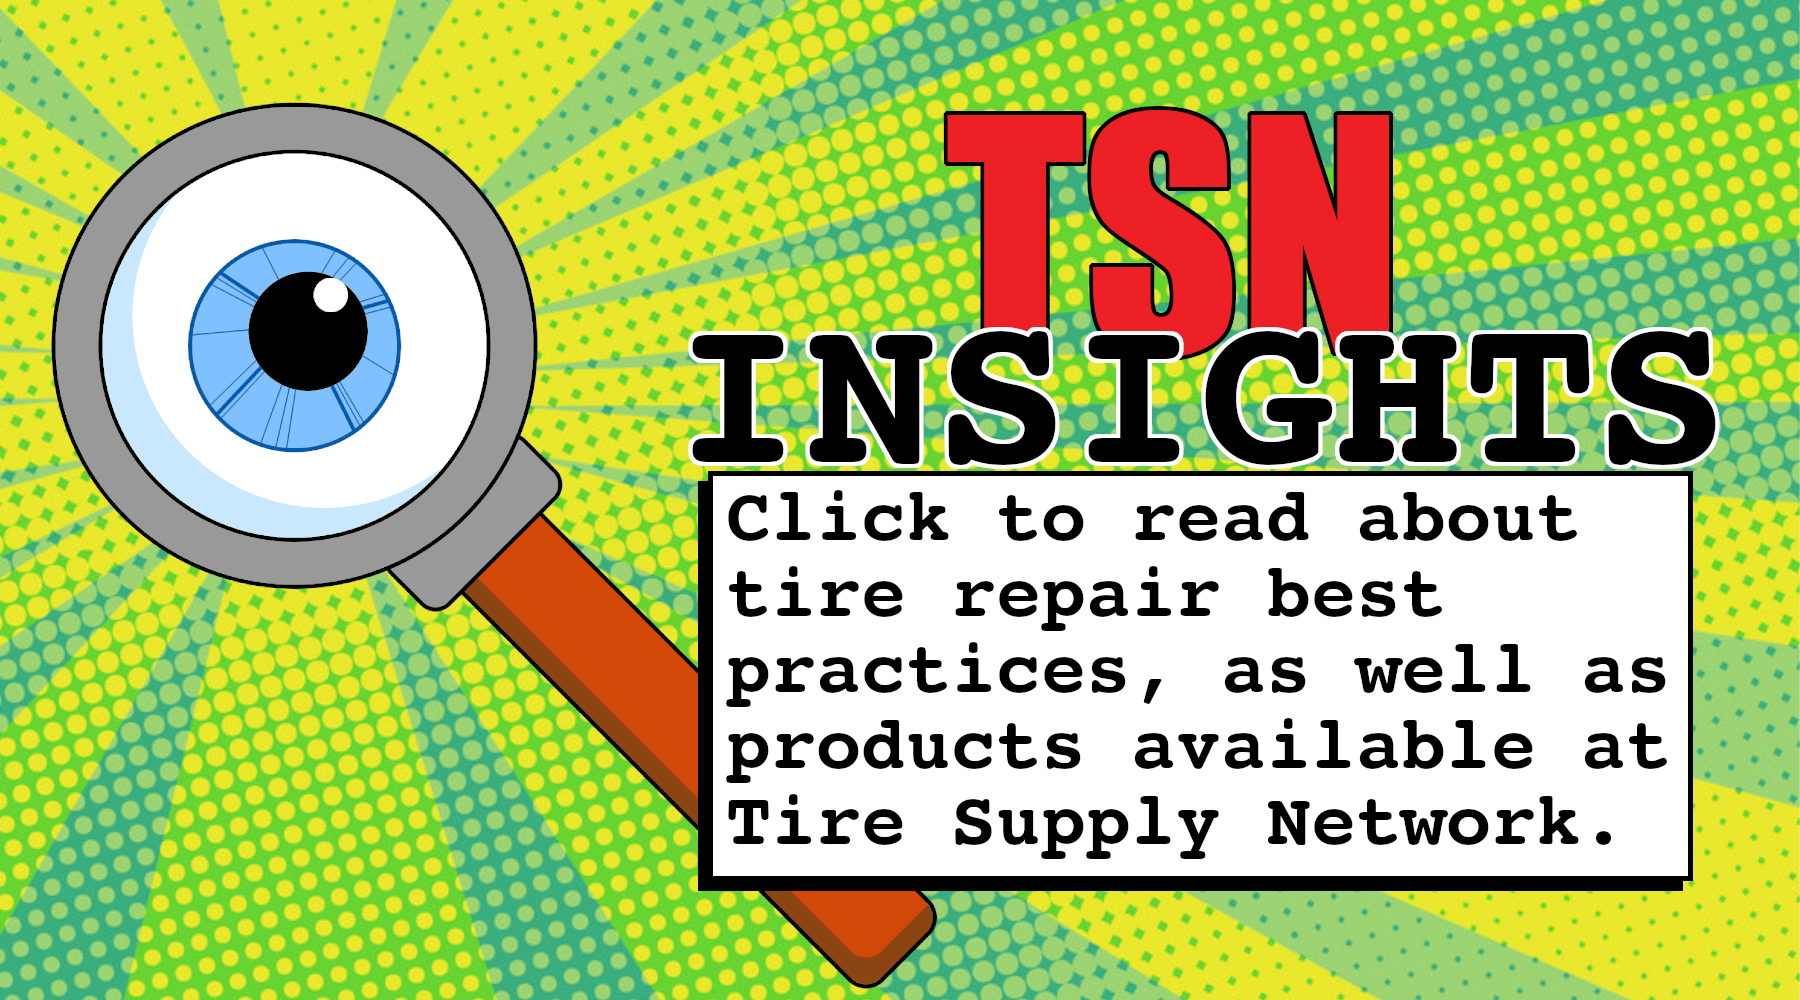 TSN-insights-blog-posts-tire-repair-best-practices-procedures-information-new-products-programs-features-tire-supplies-tire-repair-tire-supplier-valve-stems-wheel-weights-tire-patches